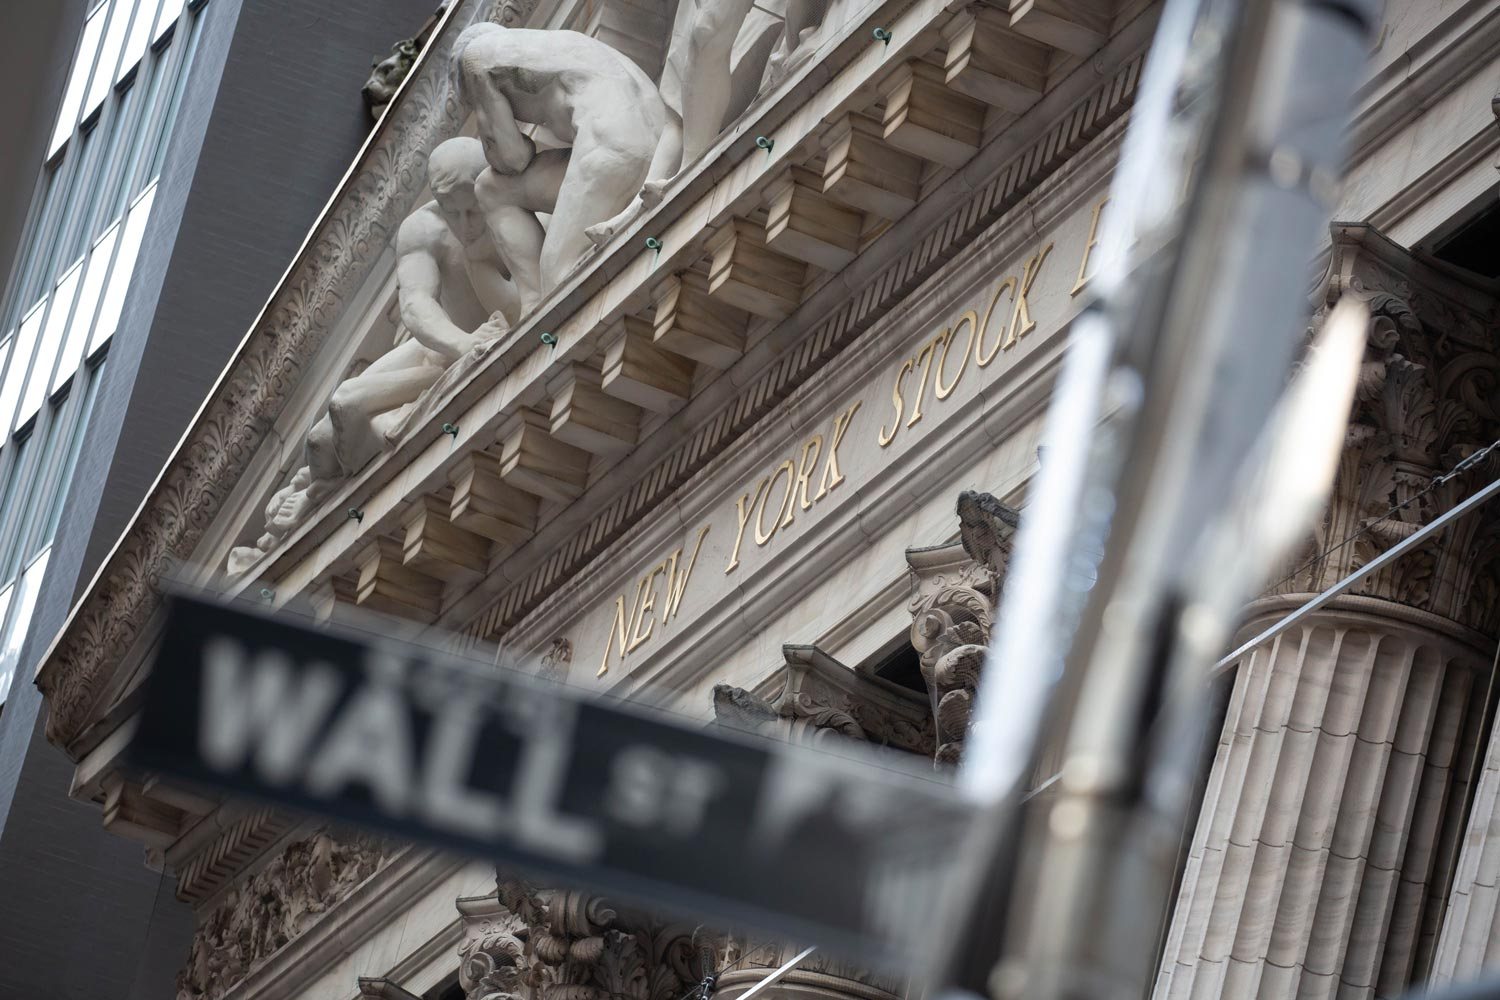 Wall Street's frothy mood smacks brands like Macy's and Blockbuster, and Facebook jabs Apple: Thursday Wake-Up Call